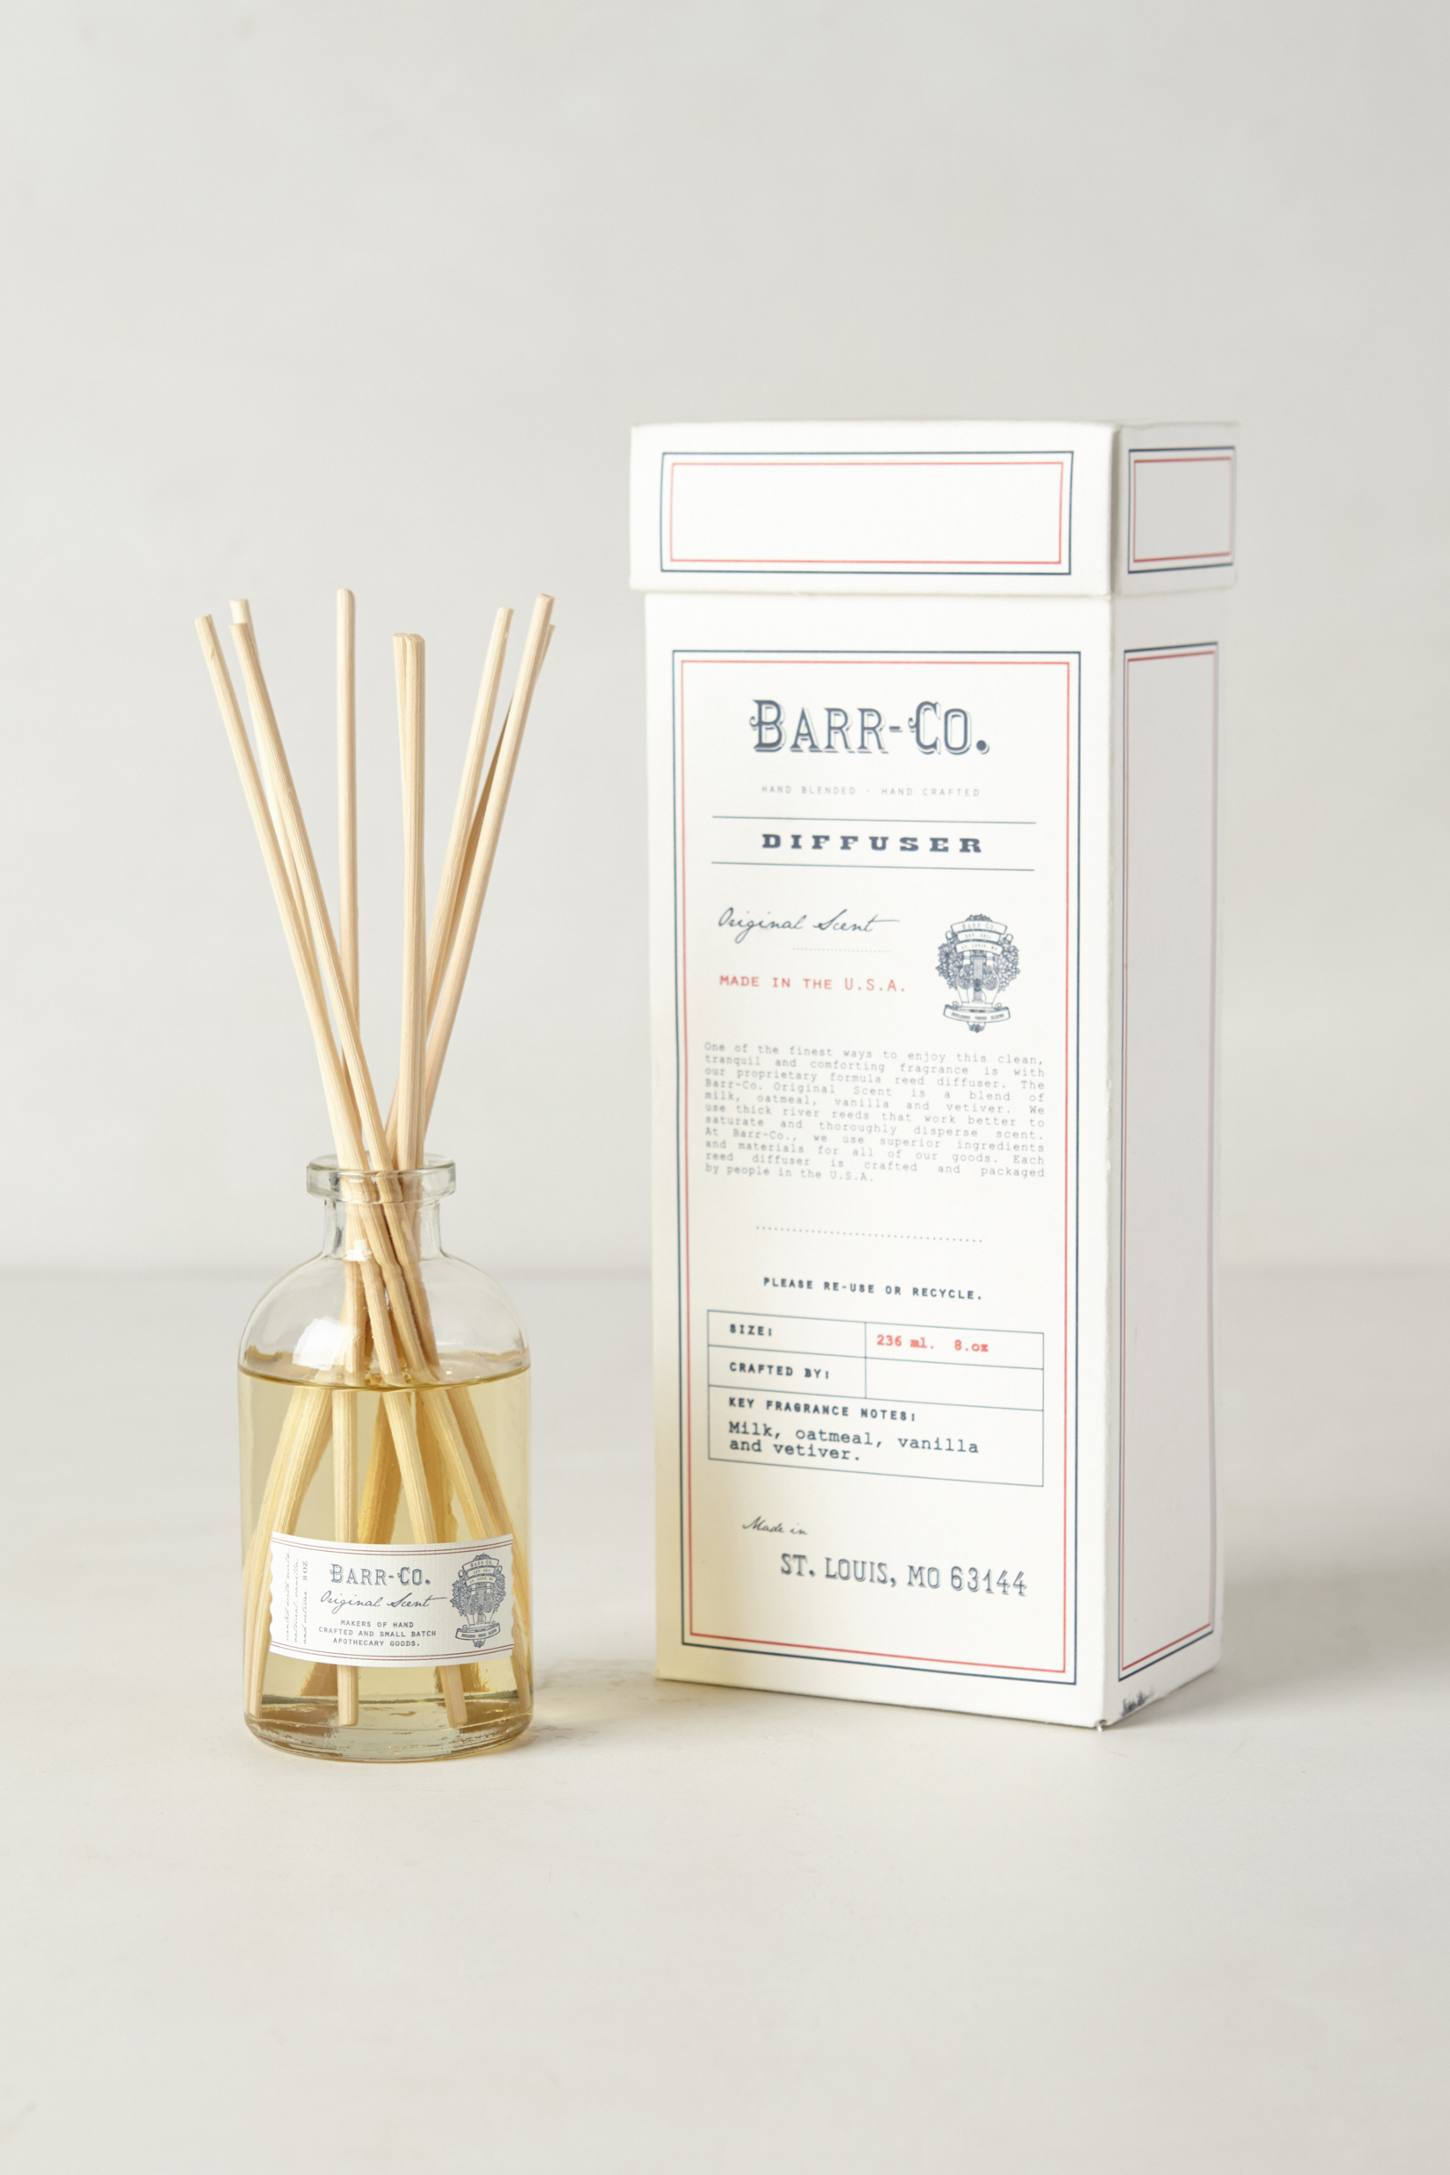 Slide View: 1: Barr-Co. Reed Diffuser